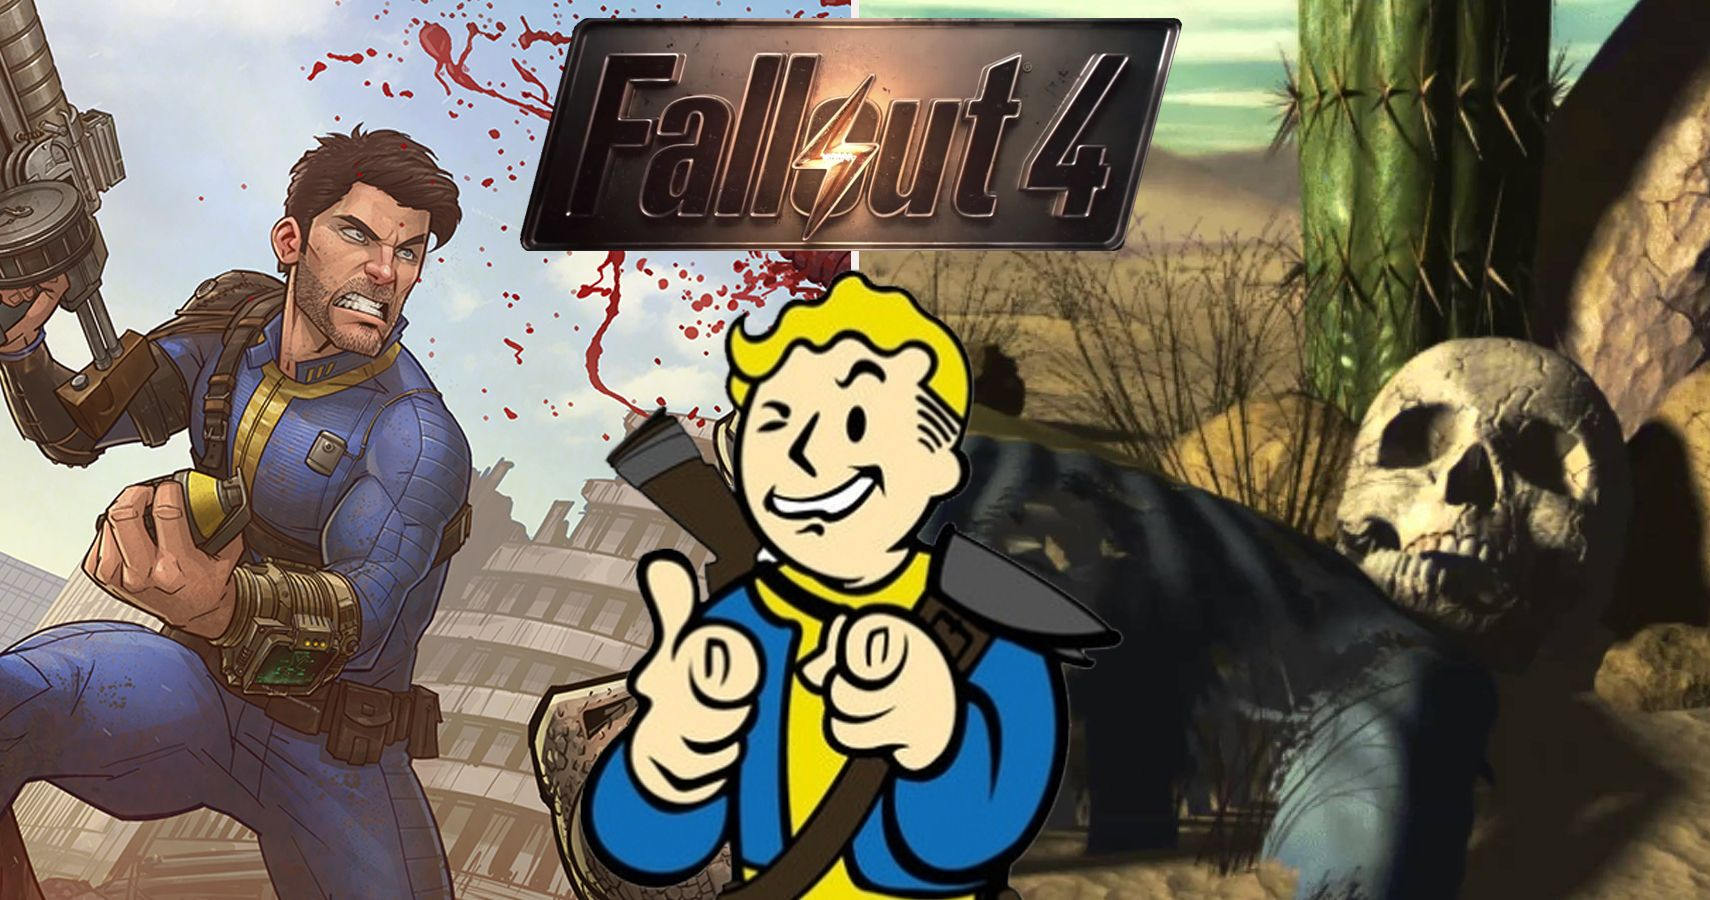 The Best And Worst Perks In Fallout 4 | TheGamer